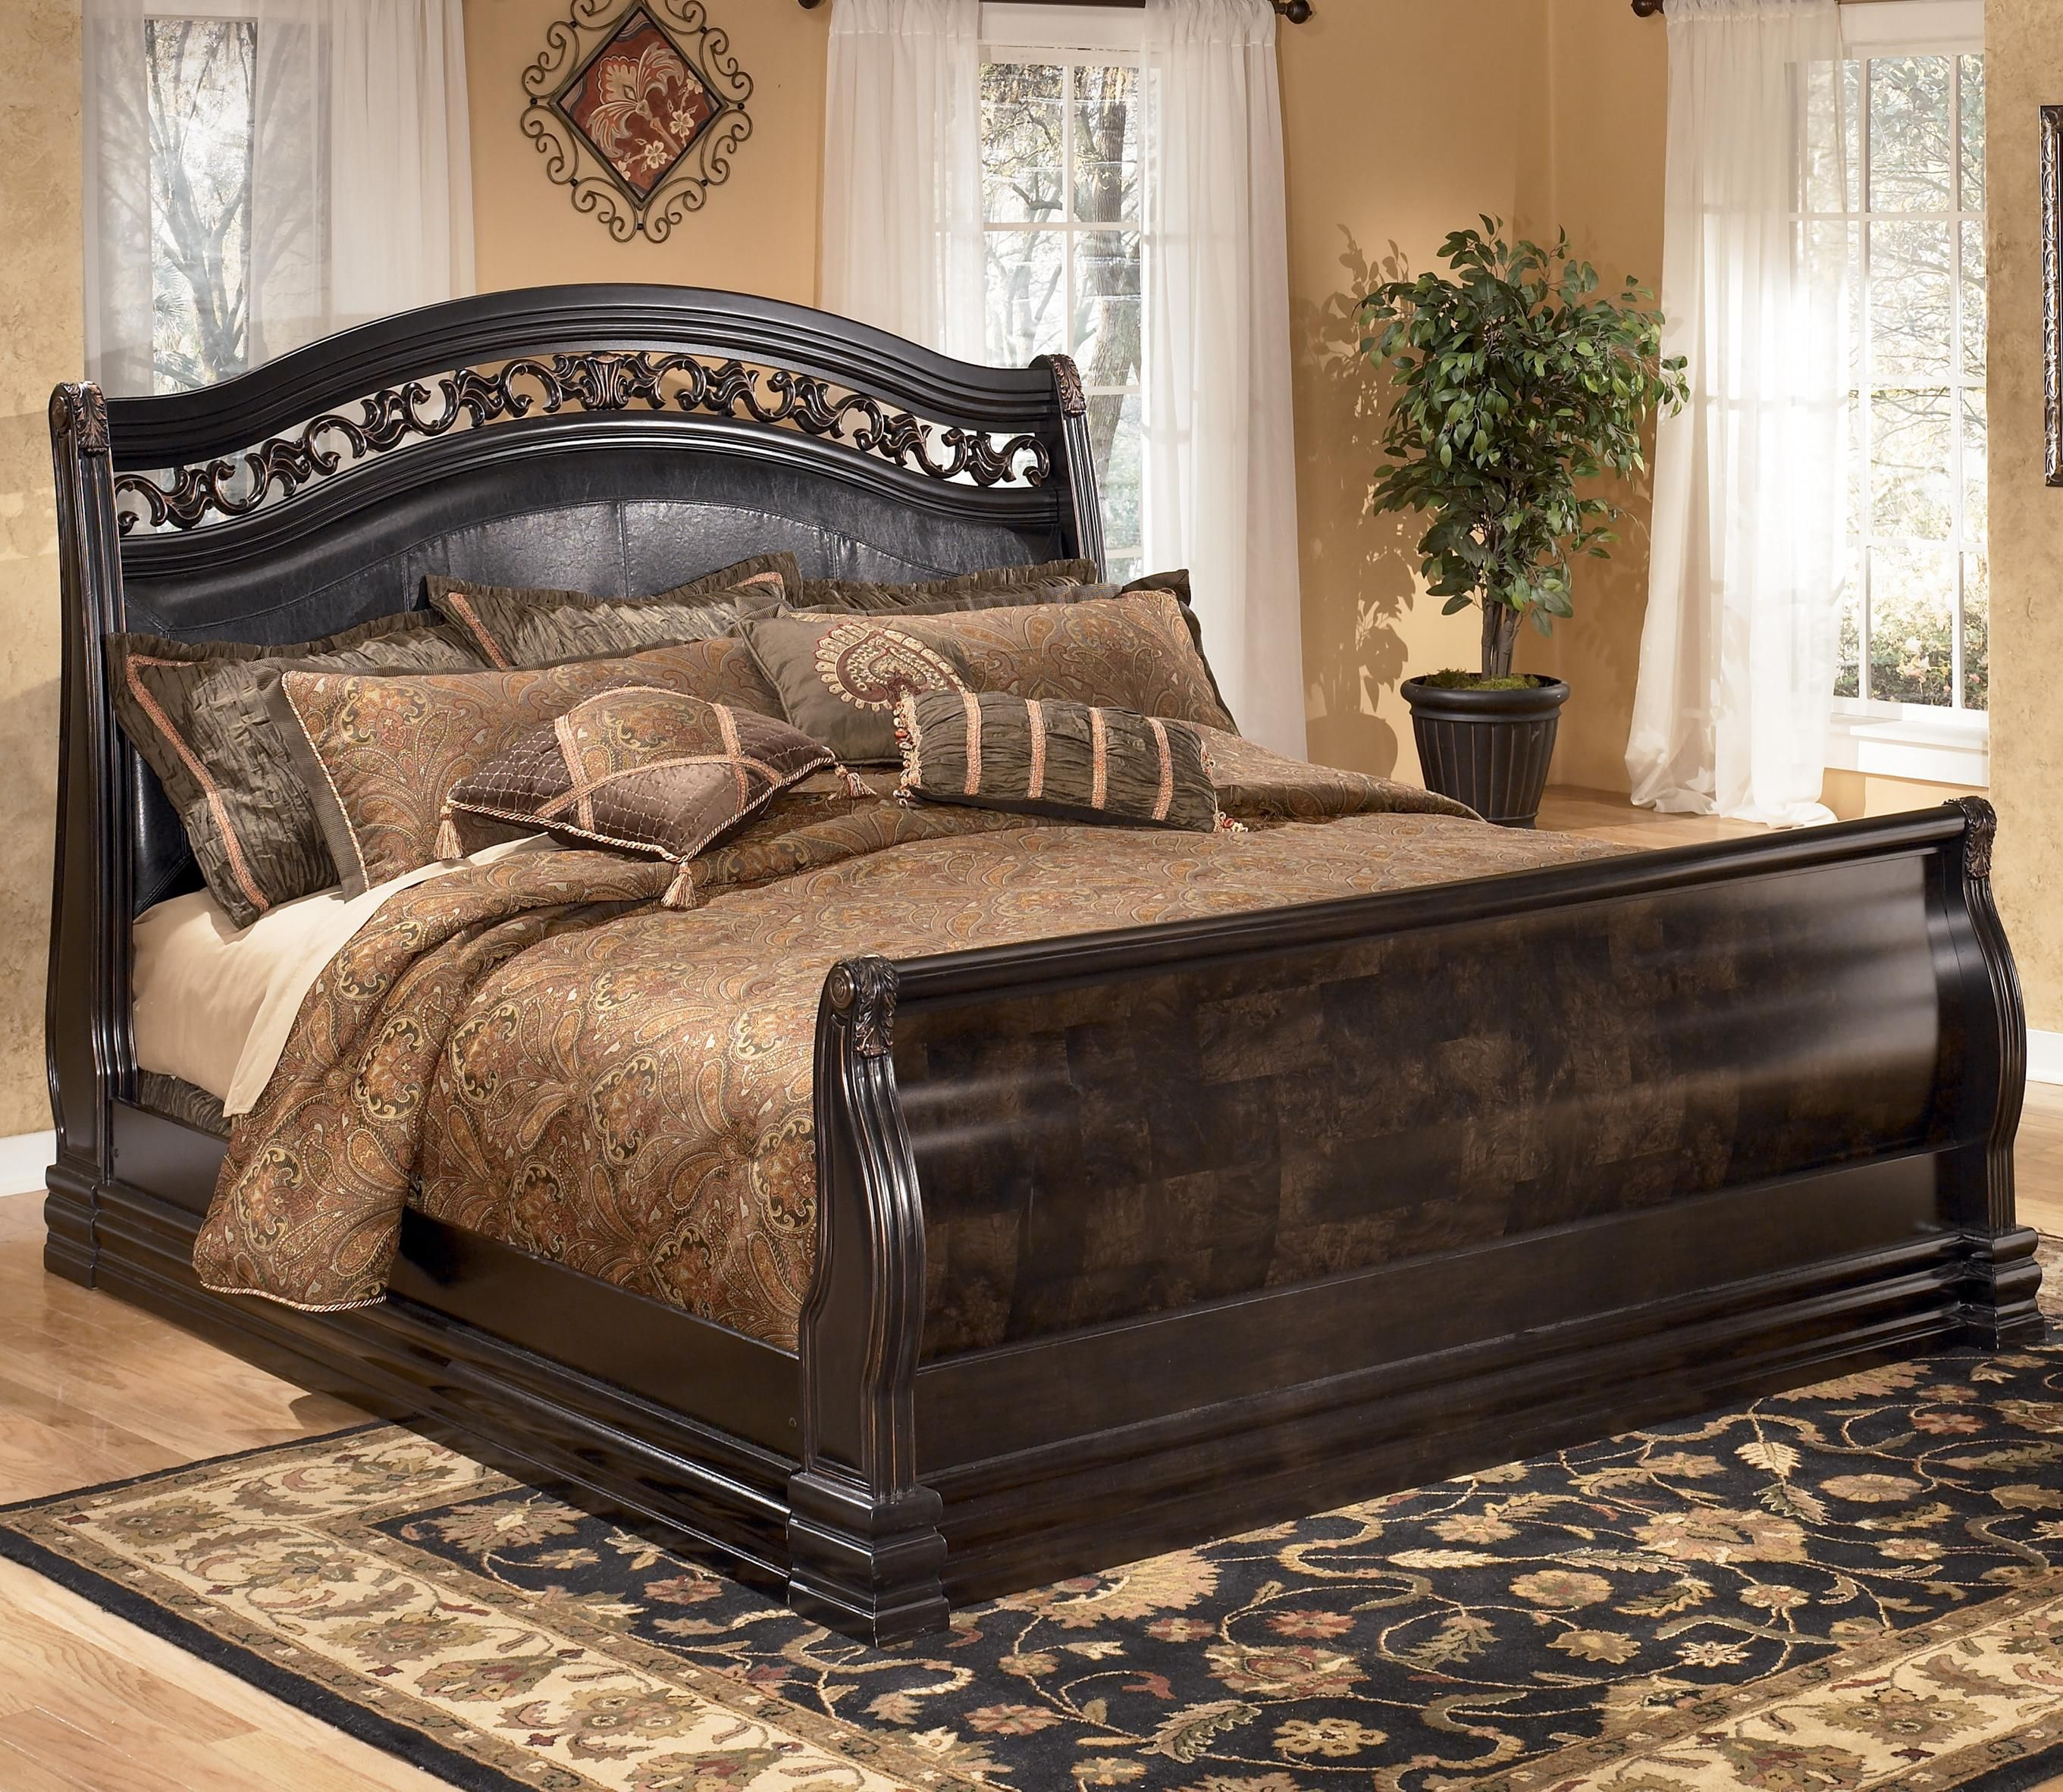 Suzannah Queen Sleigh Bed With Large Moulding By Signature